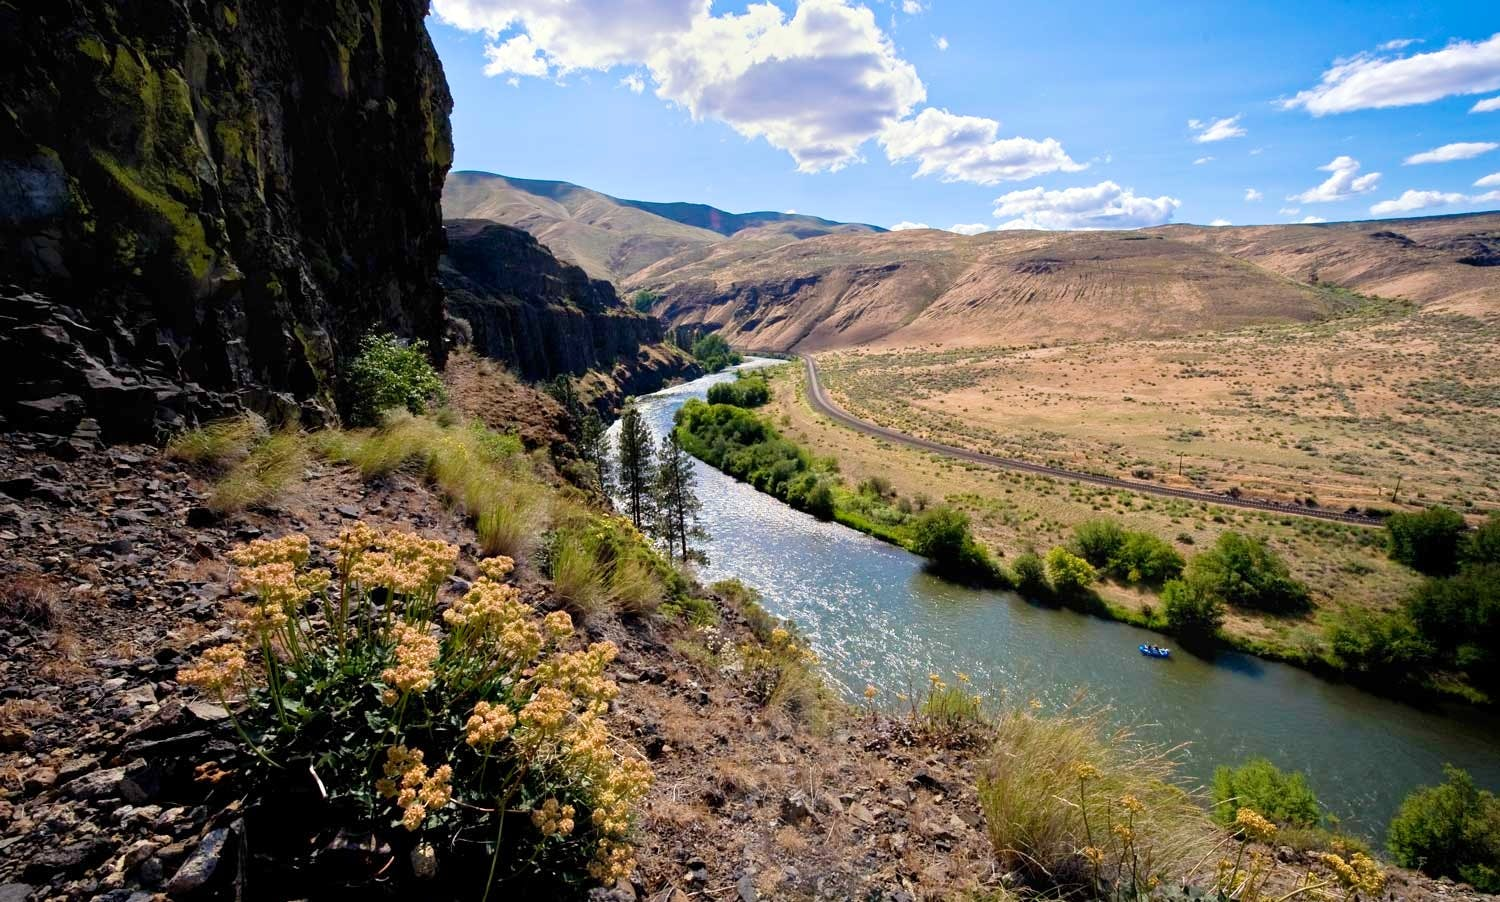 Rent Inner Tube on the Yakima River, Washington